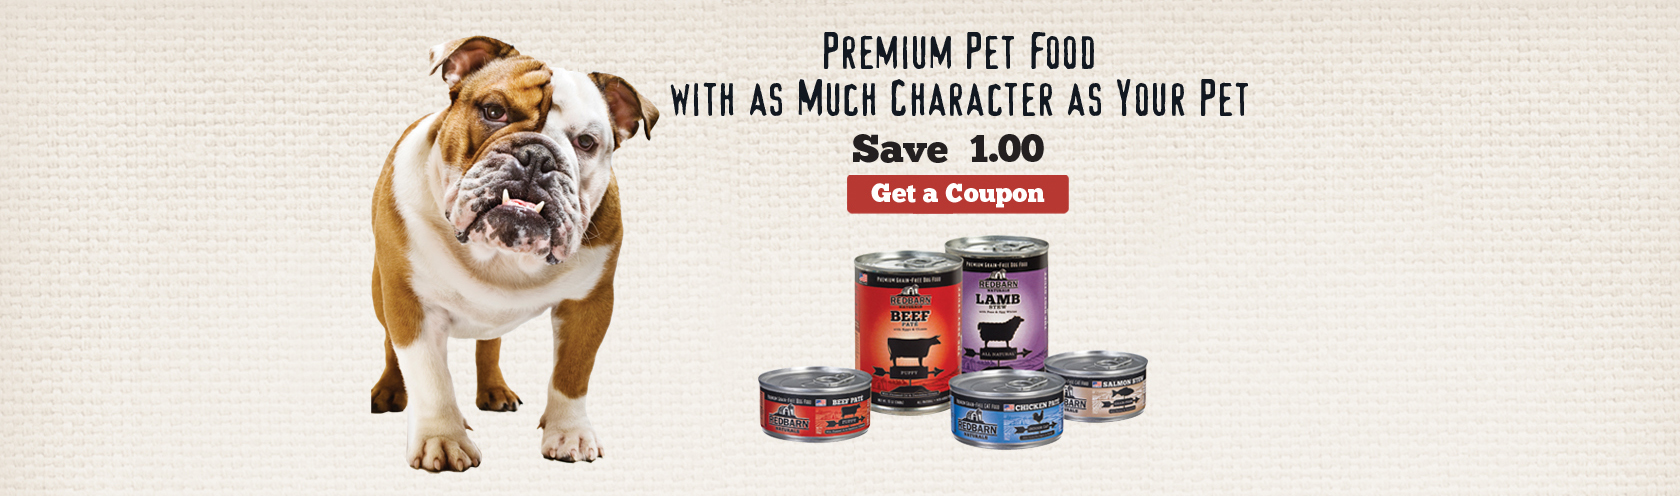 We began Redbarn Pet Products searching for high quality pet food that was actually good for our dogs. Since 1996, we've been providing high quality, innovative pet food and treats at competitive prices. At Redbarn quality is #1. We have strict quality assurance specifications in our factories to ensure the freshest product goes out our doors for your dog or cat to enjoy. Approximately 80% of Redbarn's products are manufactured in our own U.S. factory, located in Great Bend, Kansas. Redbarn's manufacturing plants, at home or abroad, are a reflection of our company and the standards we uphold.